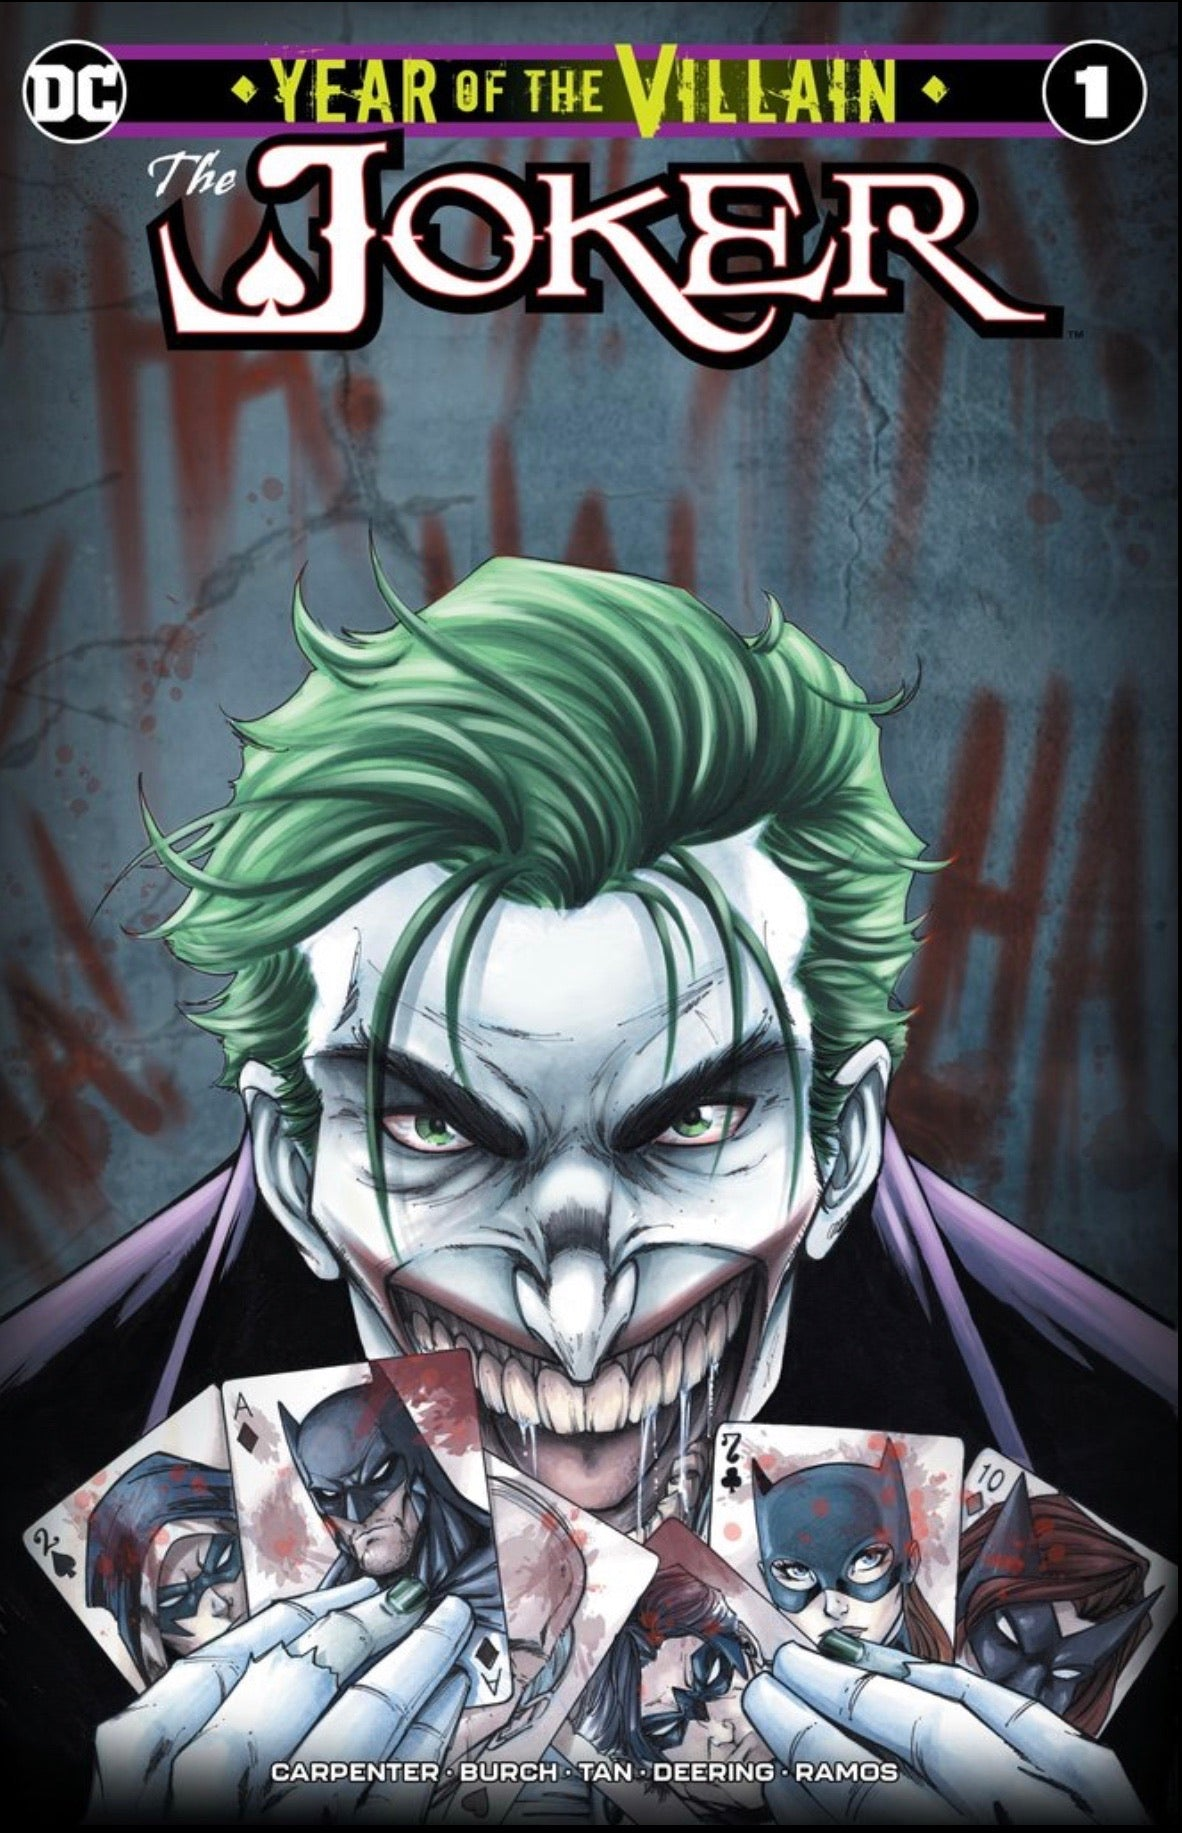 JOKER YEAR OF THE VILLAIN #1 RYAN KINCAID Cover A Ltd To 3000